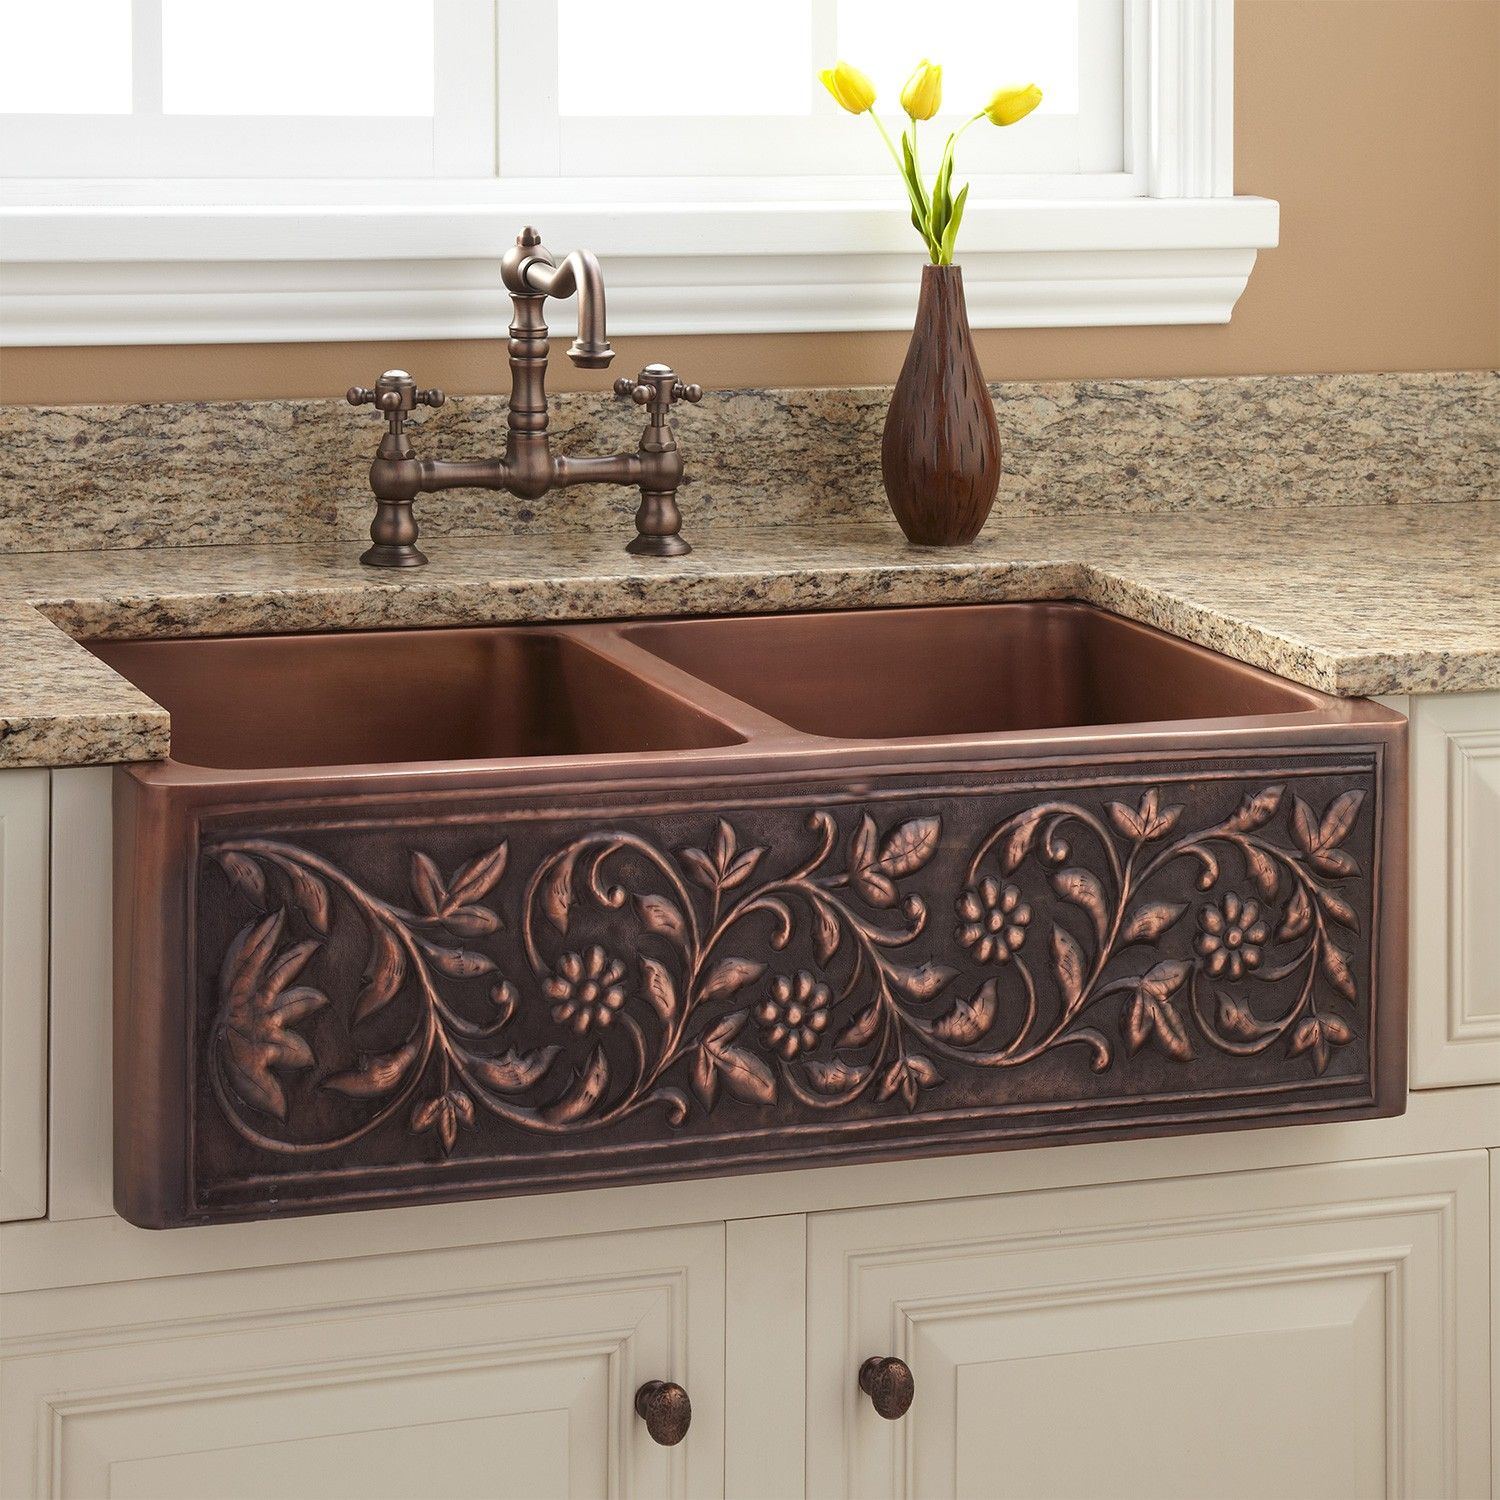 "Old Farmhouse Kitchen Sinks: 36"" Vine Design Double-Bowl Copper Farmhouse Sink"